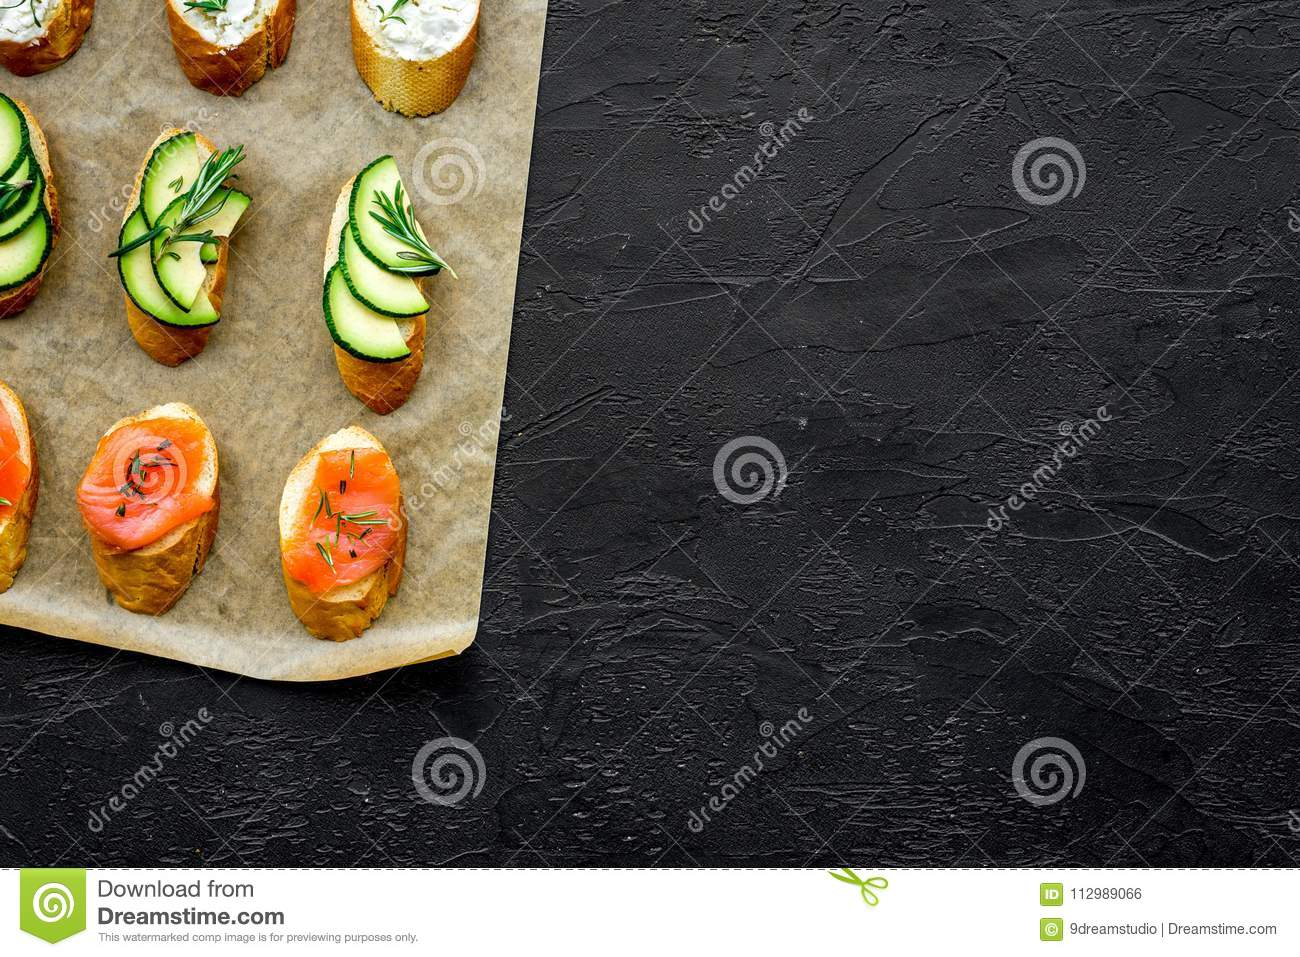 Mini sandwich set with french baguette, cheese, fish and avocado on black background top view mock up